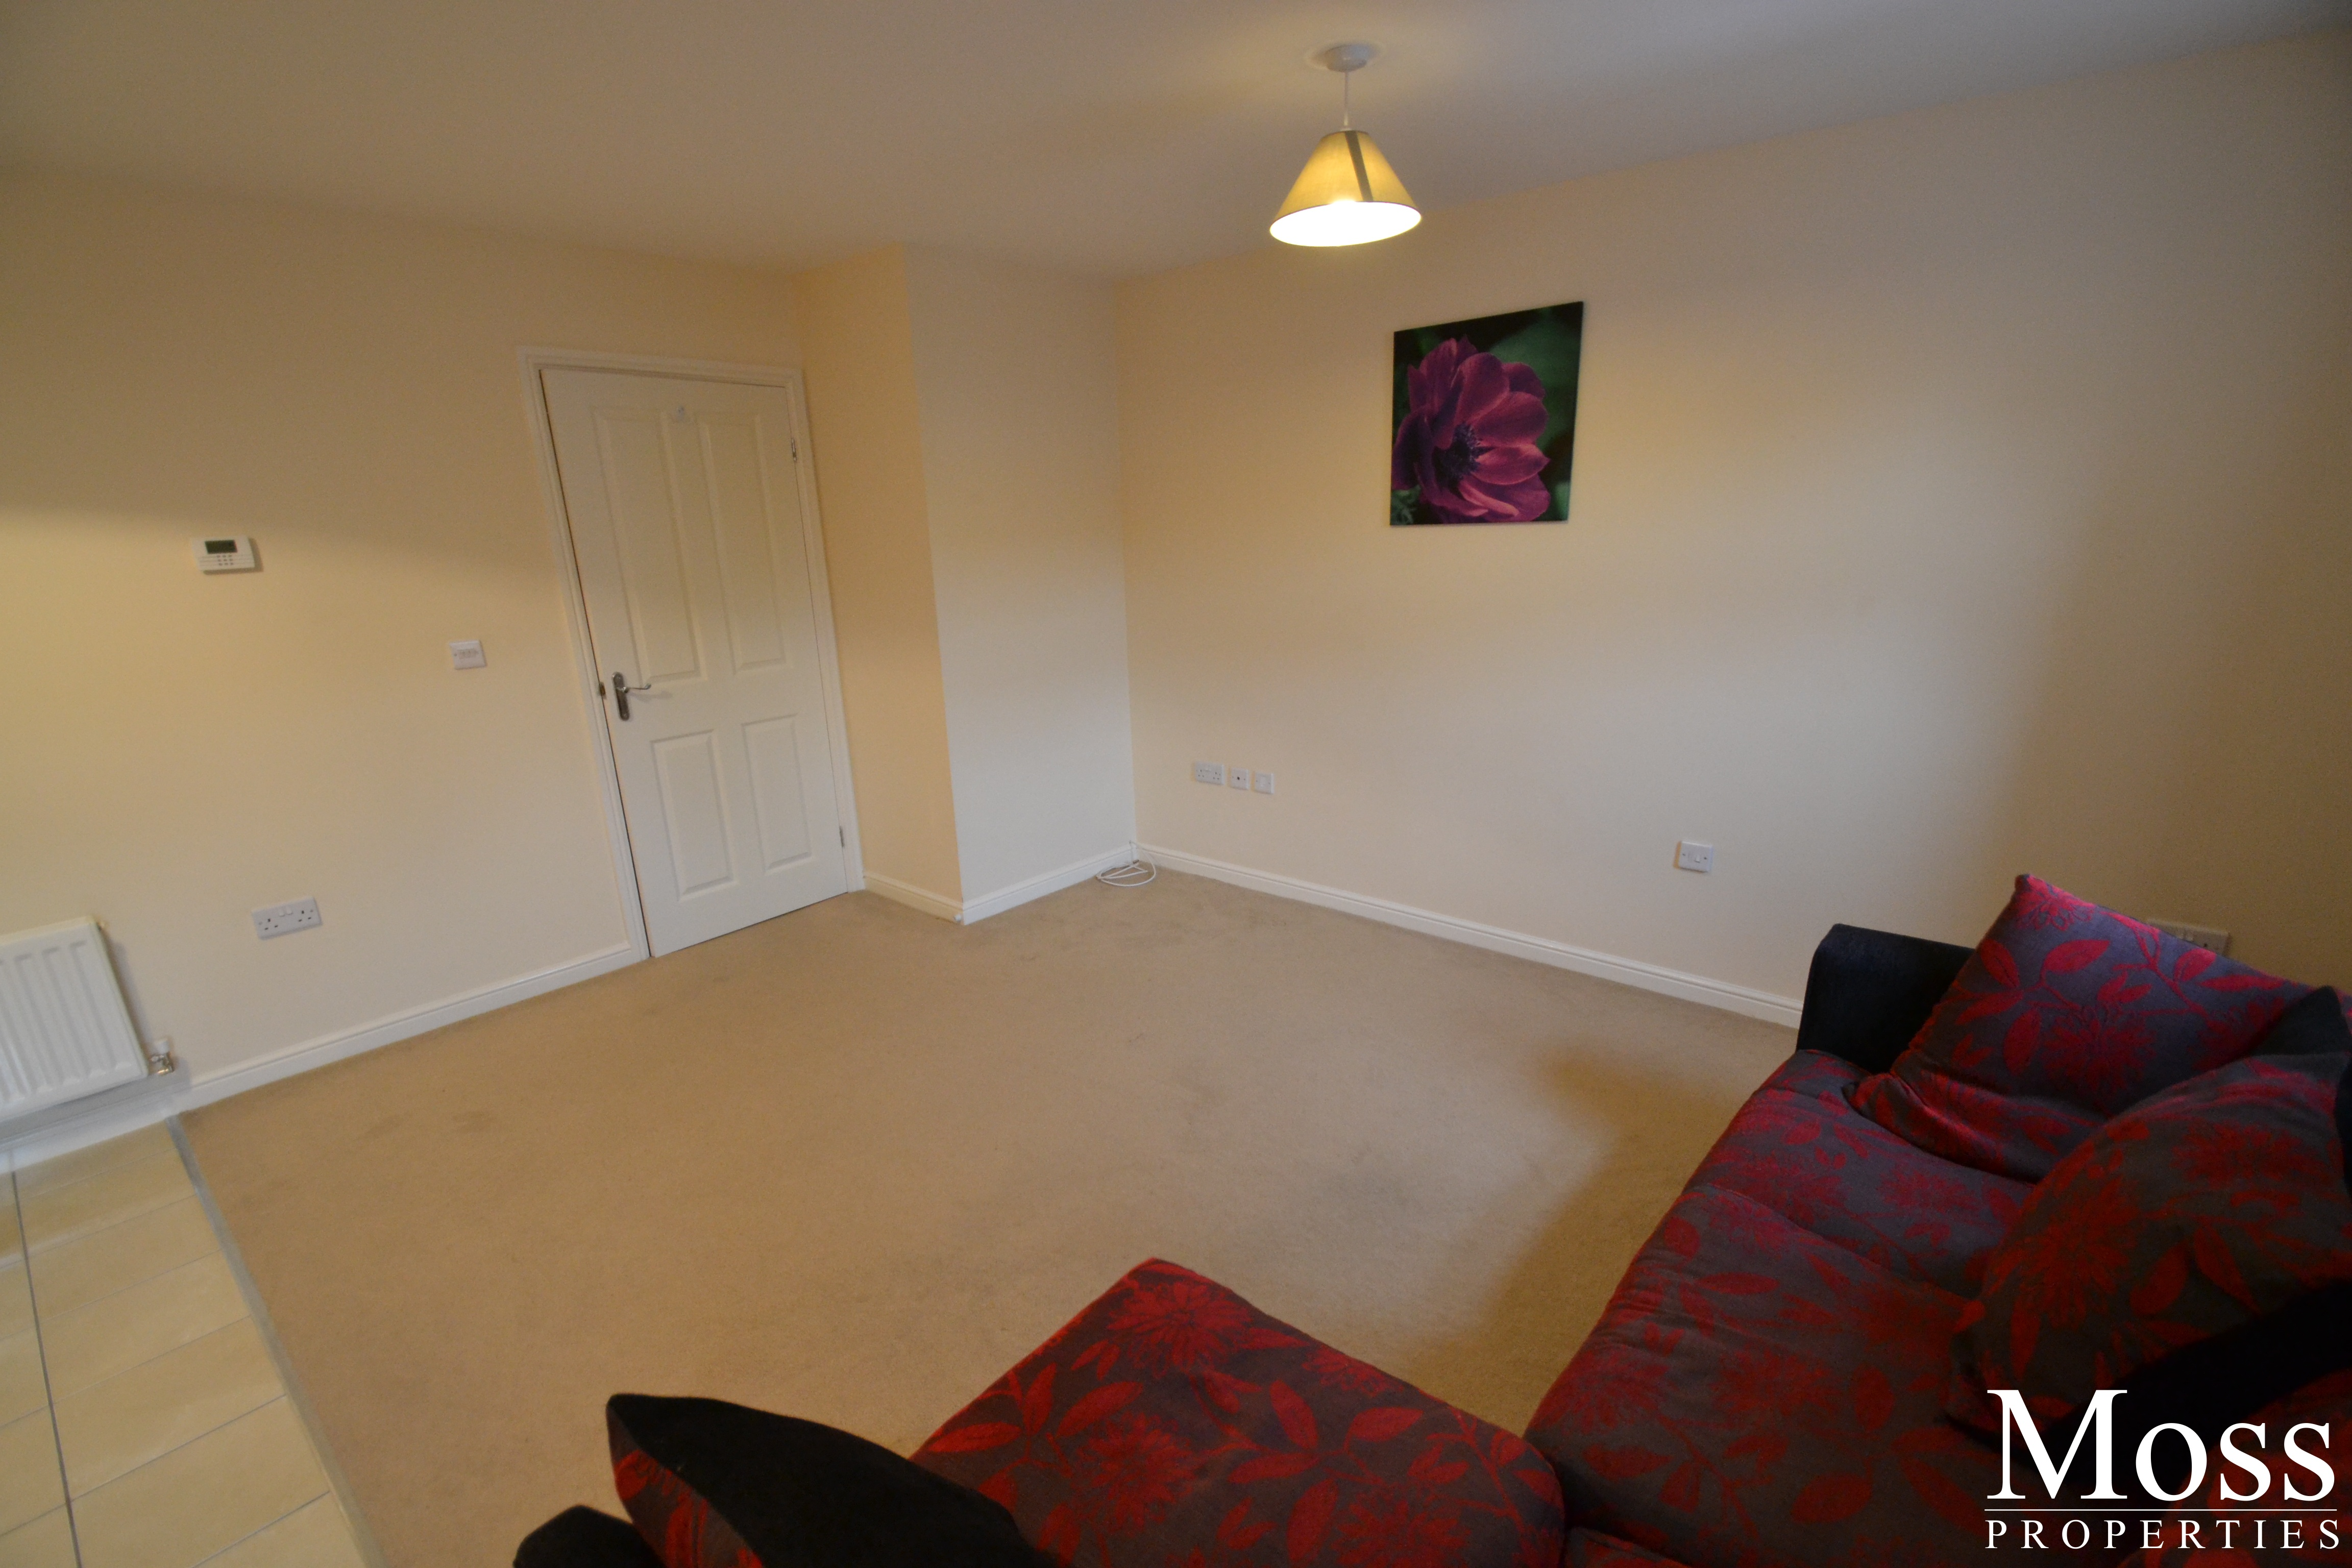 1 Bedroom Flat To Rent Mallard Chase Hatfield Doncaster